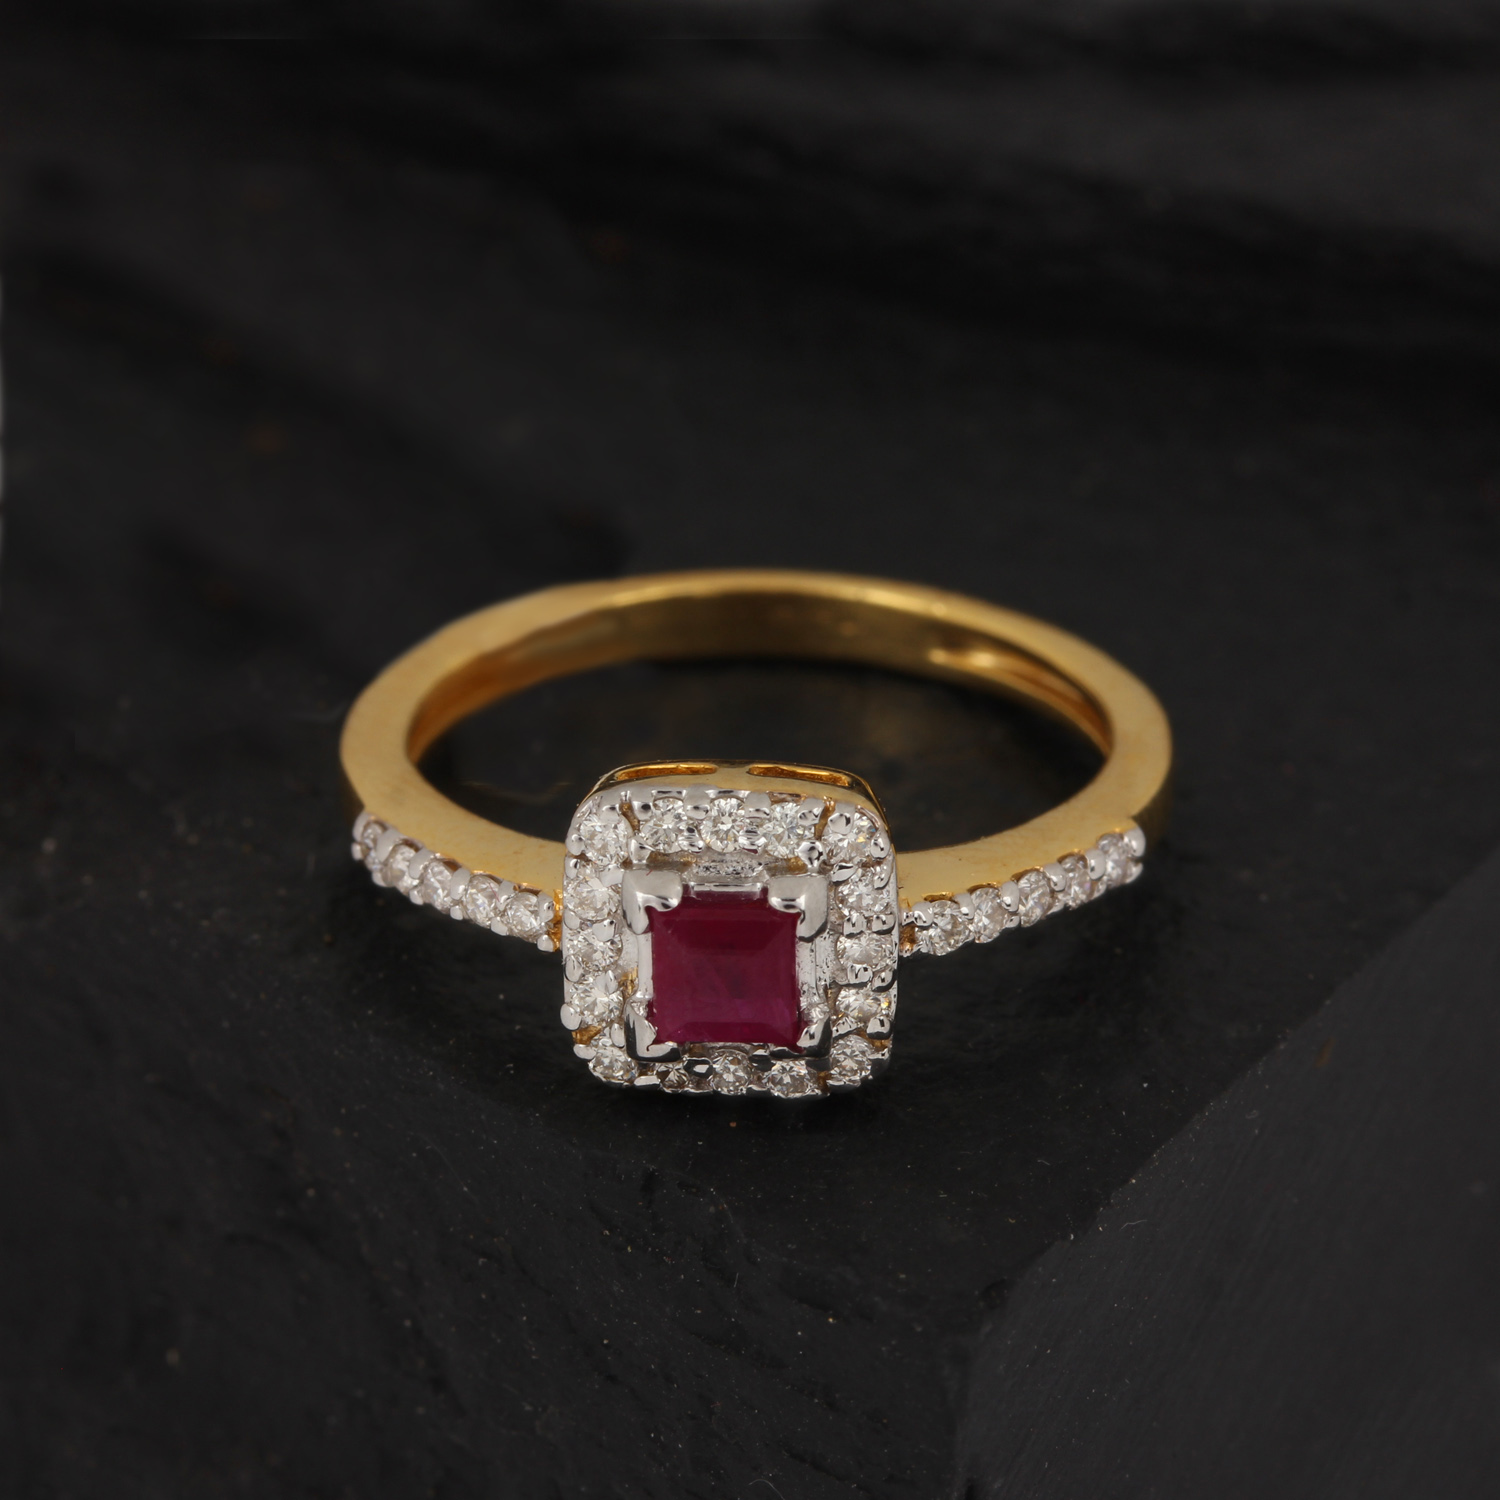 Gold Ring With Diamond And Ruby